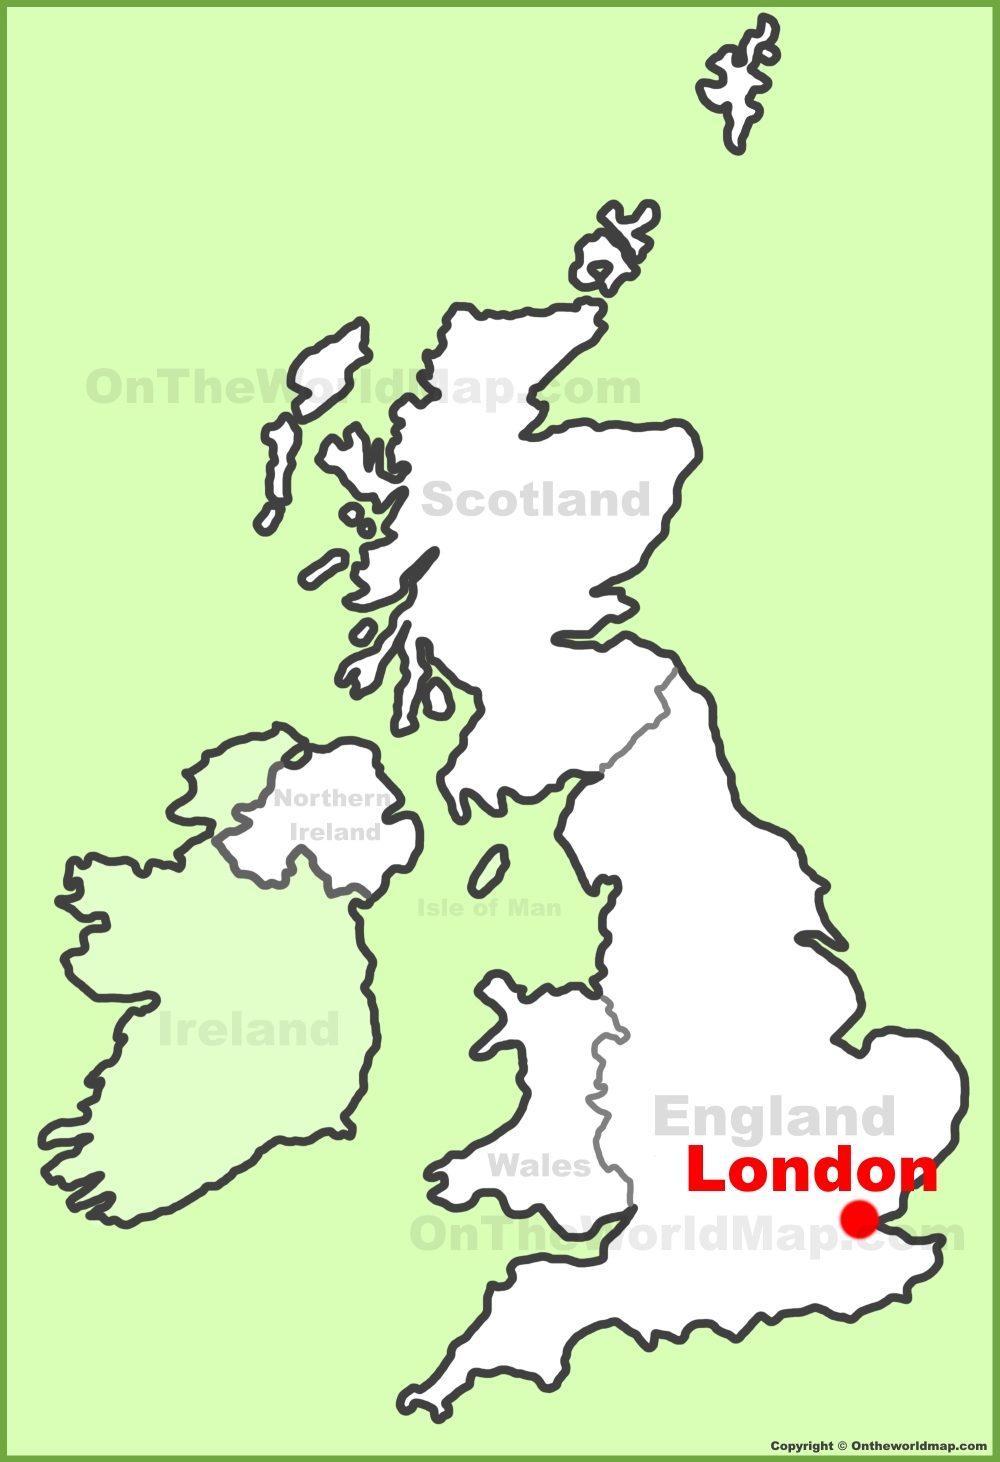 Map Of England Showing London.London Location On The Uk Map